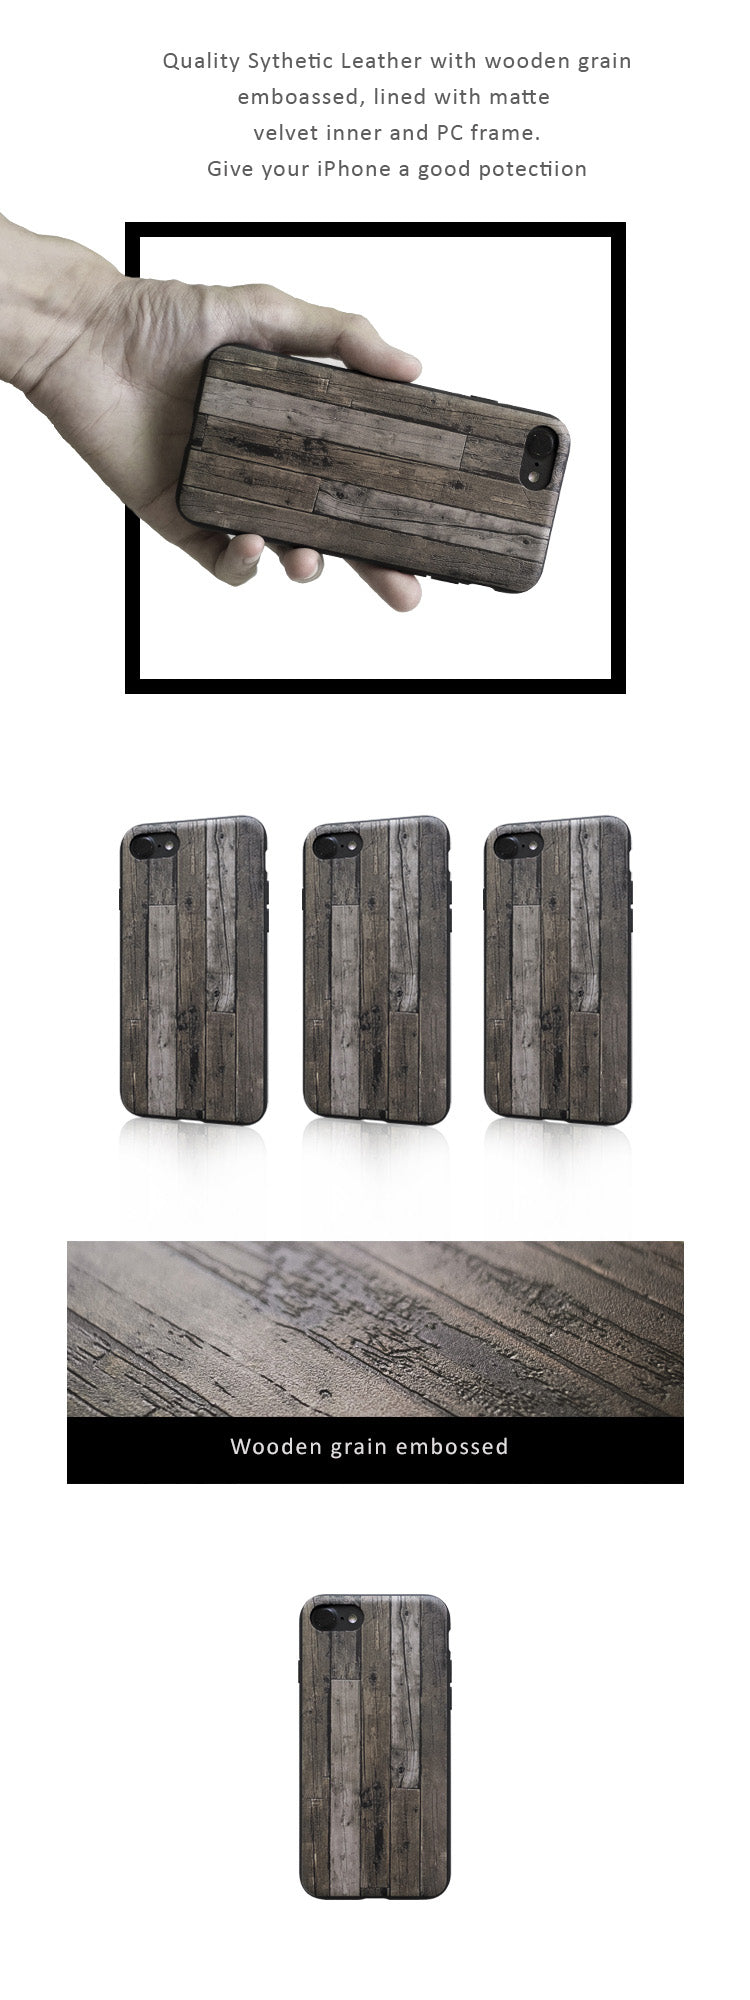 Protective case for iPhone 6/7/8, iPhone 6/7/8 Plus, iPhone X- Quality Synthetic Leather with wood grain embossed, lined with matte velvet inner and PC frame.